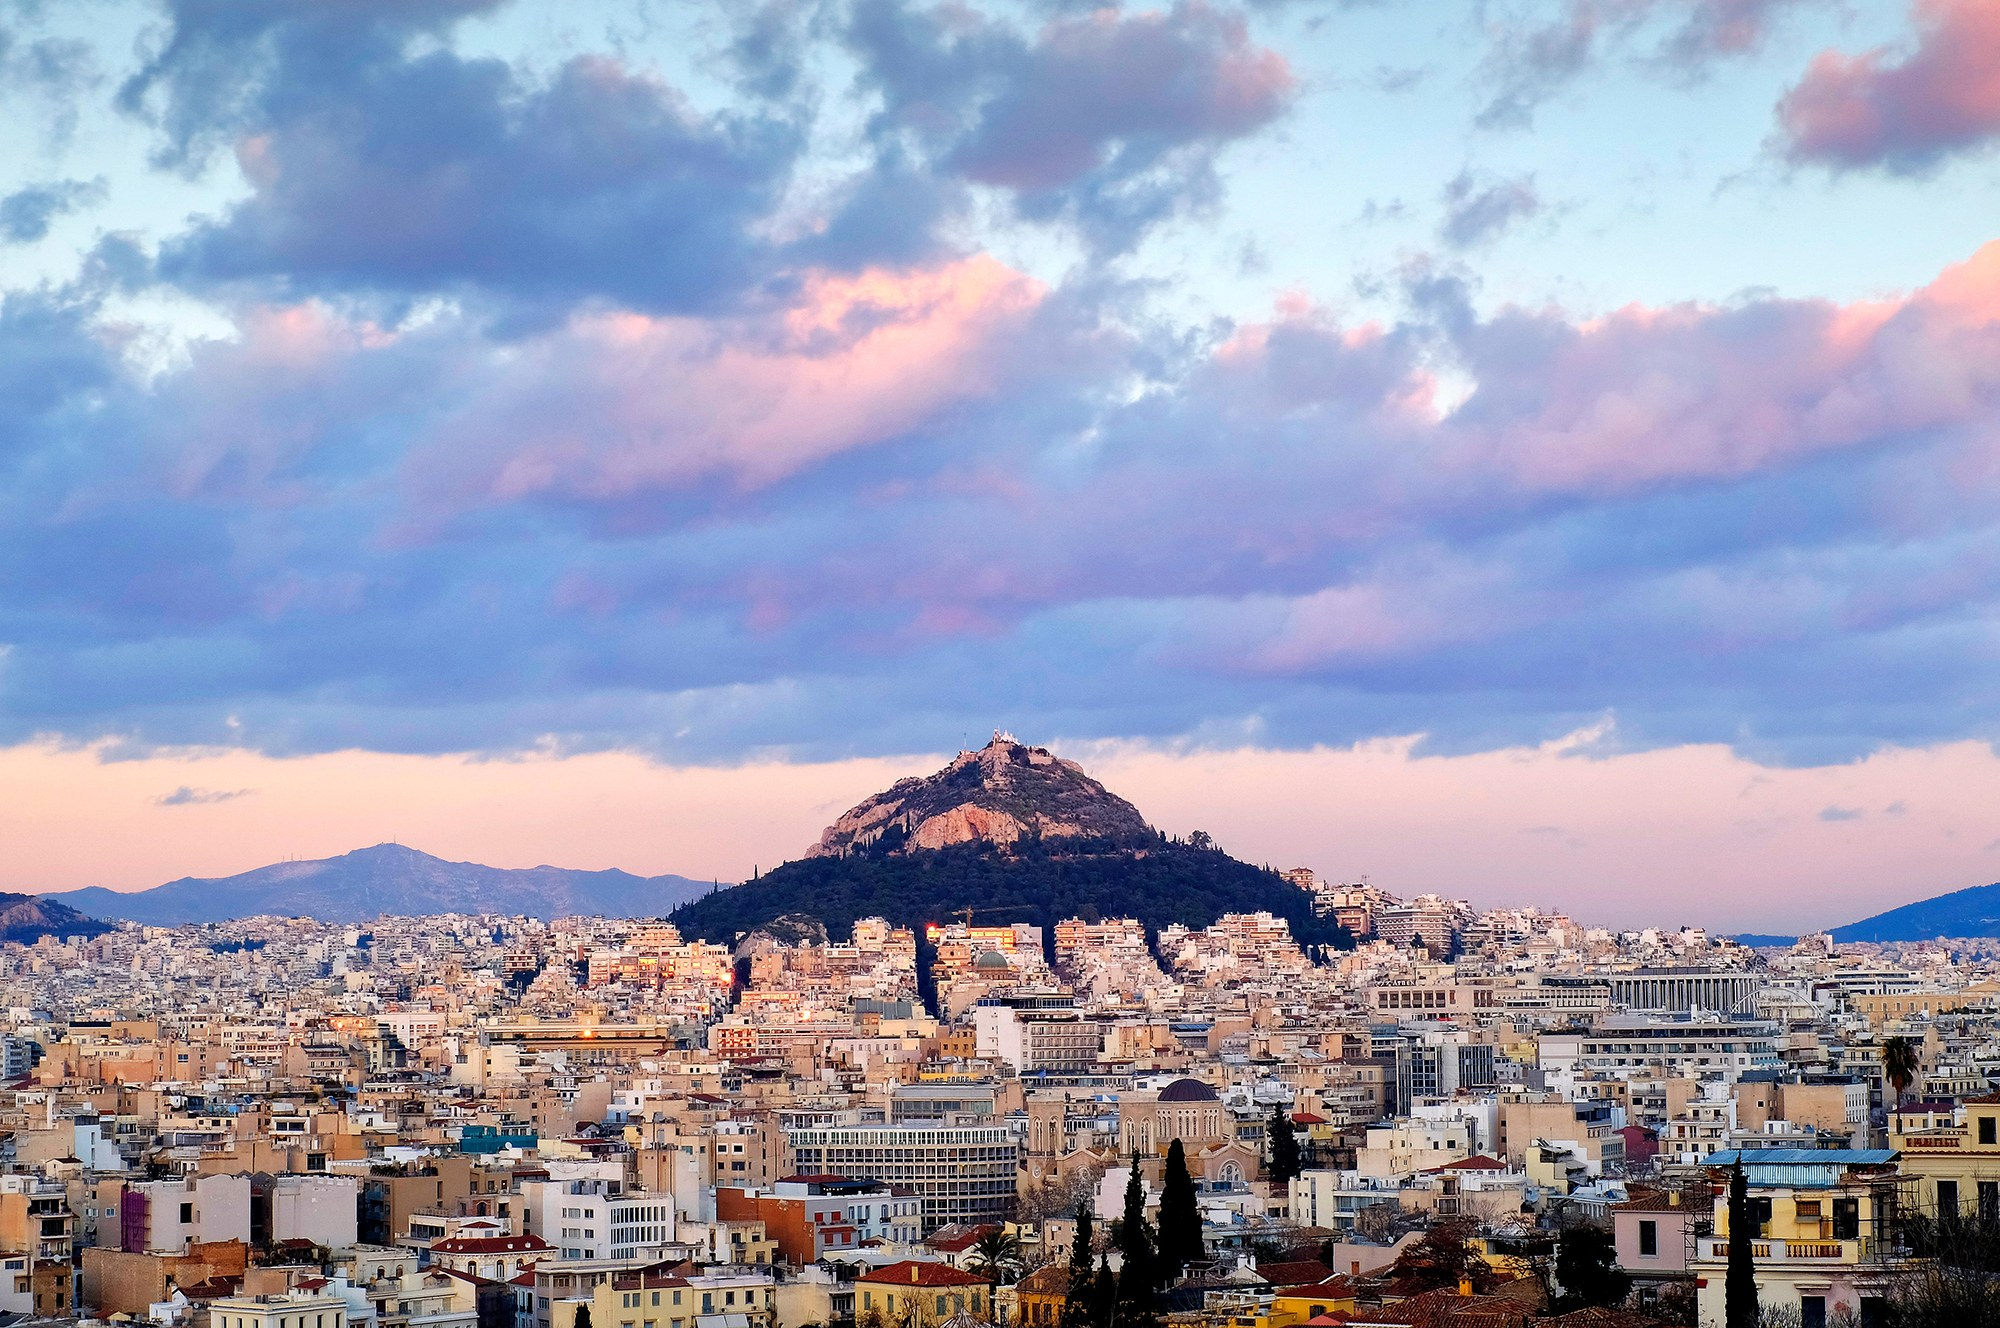 20 places to visit in athens greece and how to get there for 20 places to visit